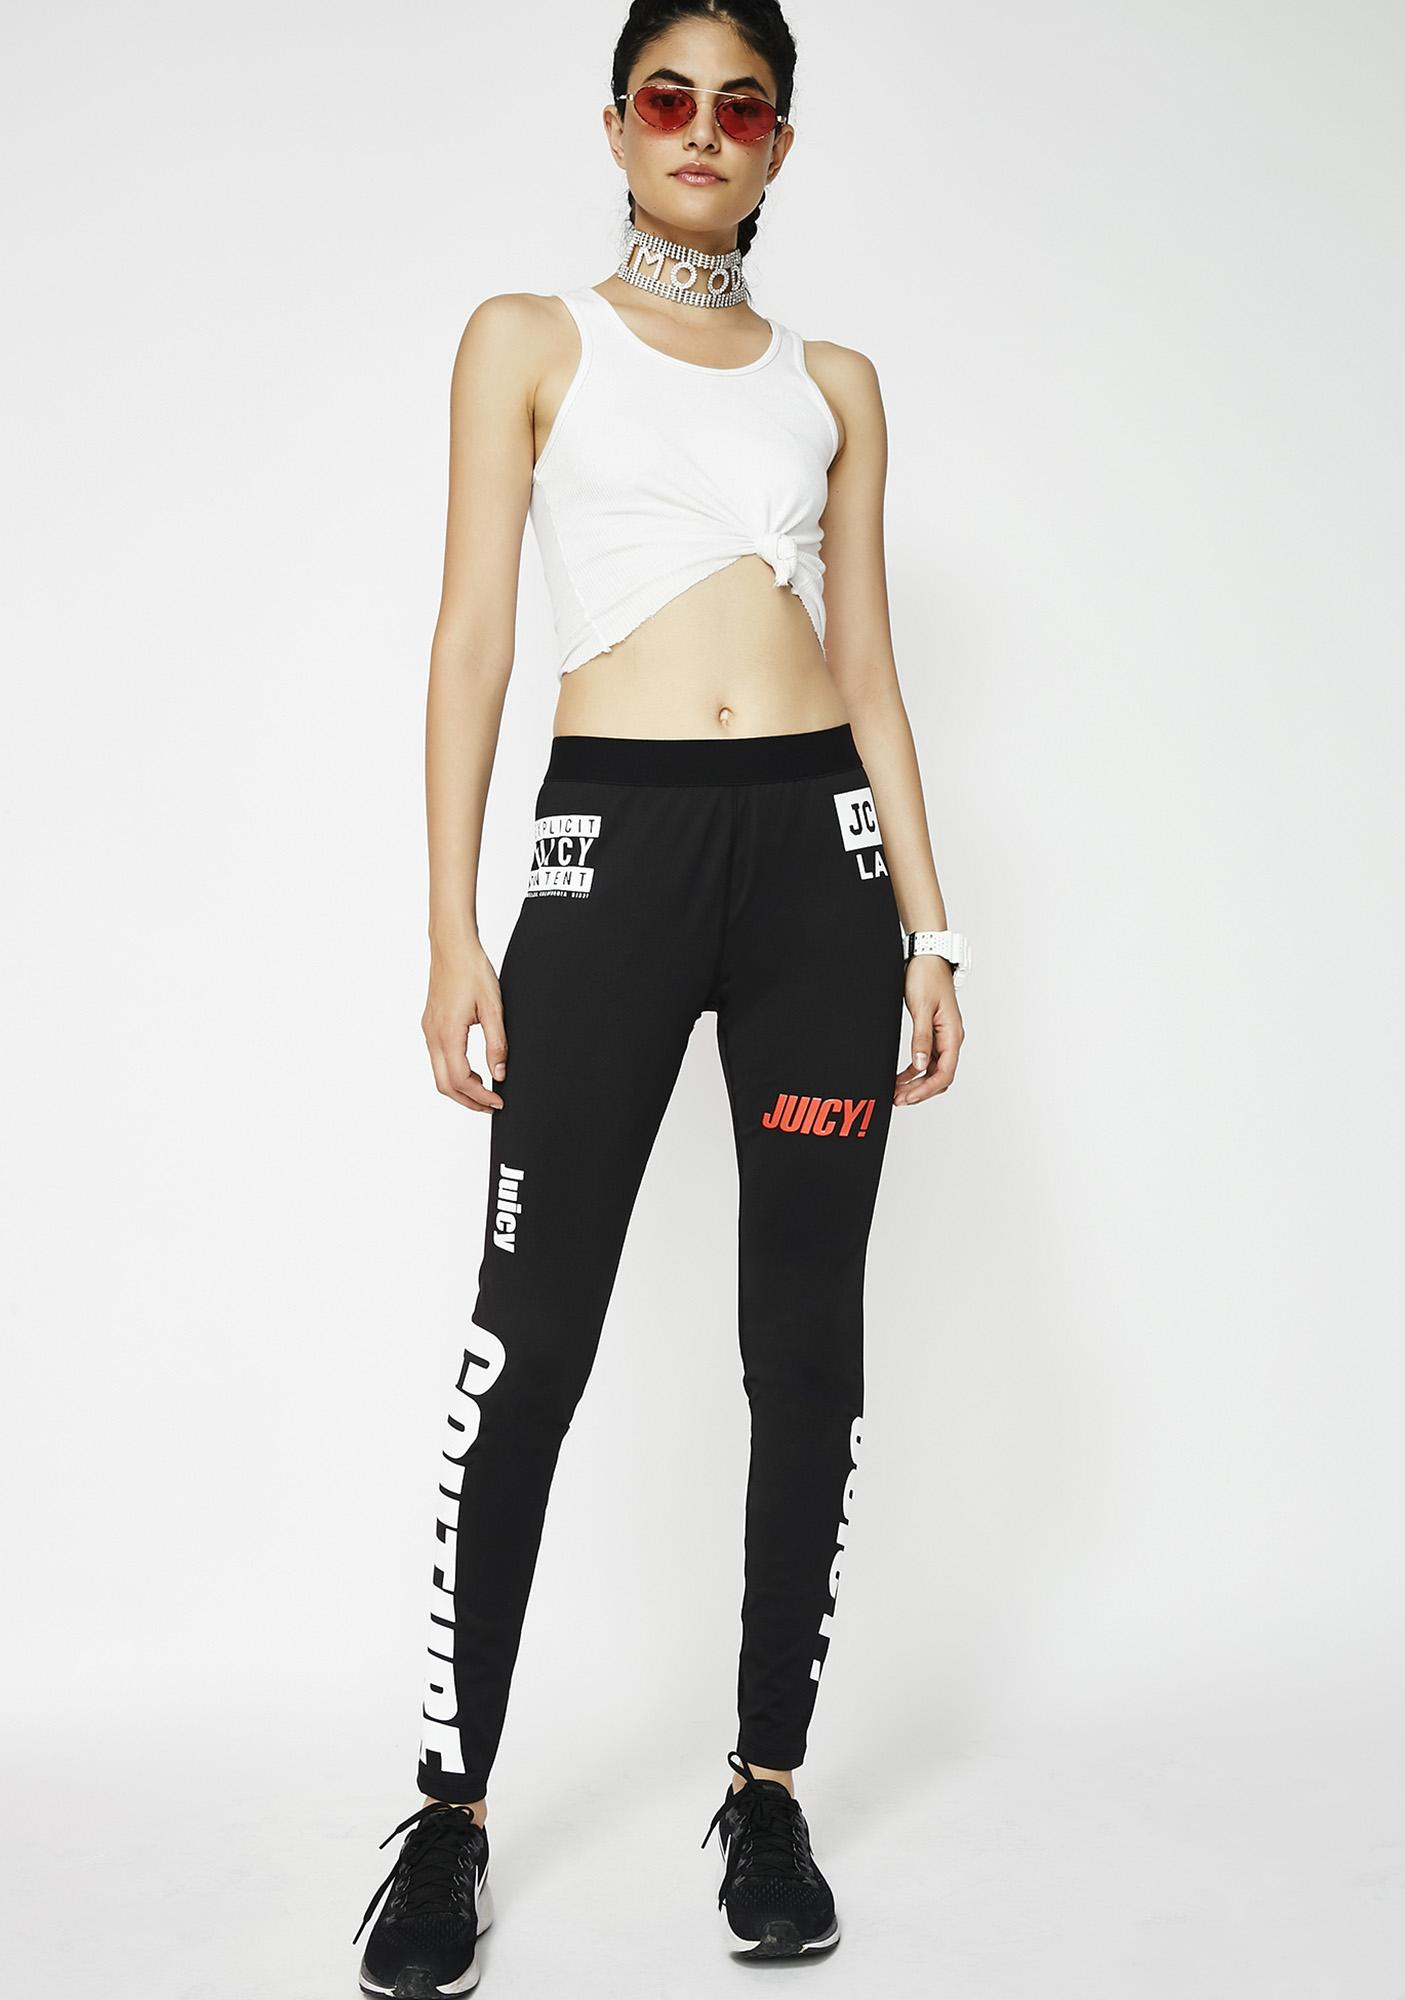 JUICY COUTURE Mixed Logos Sport Compression Leggings